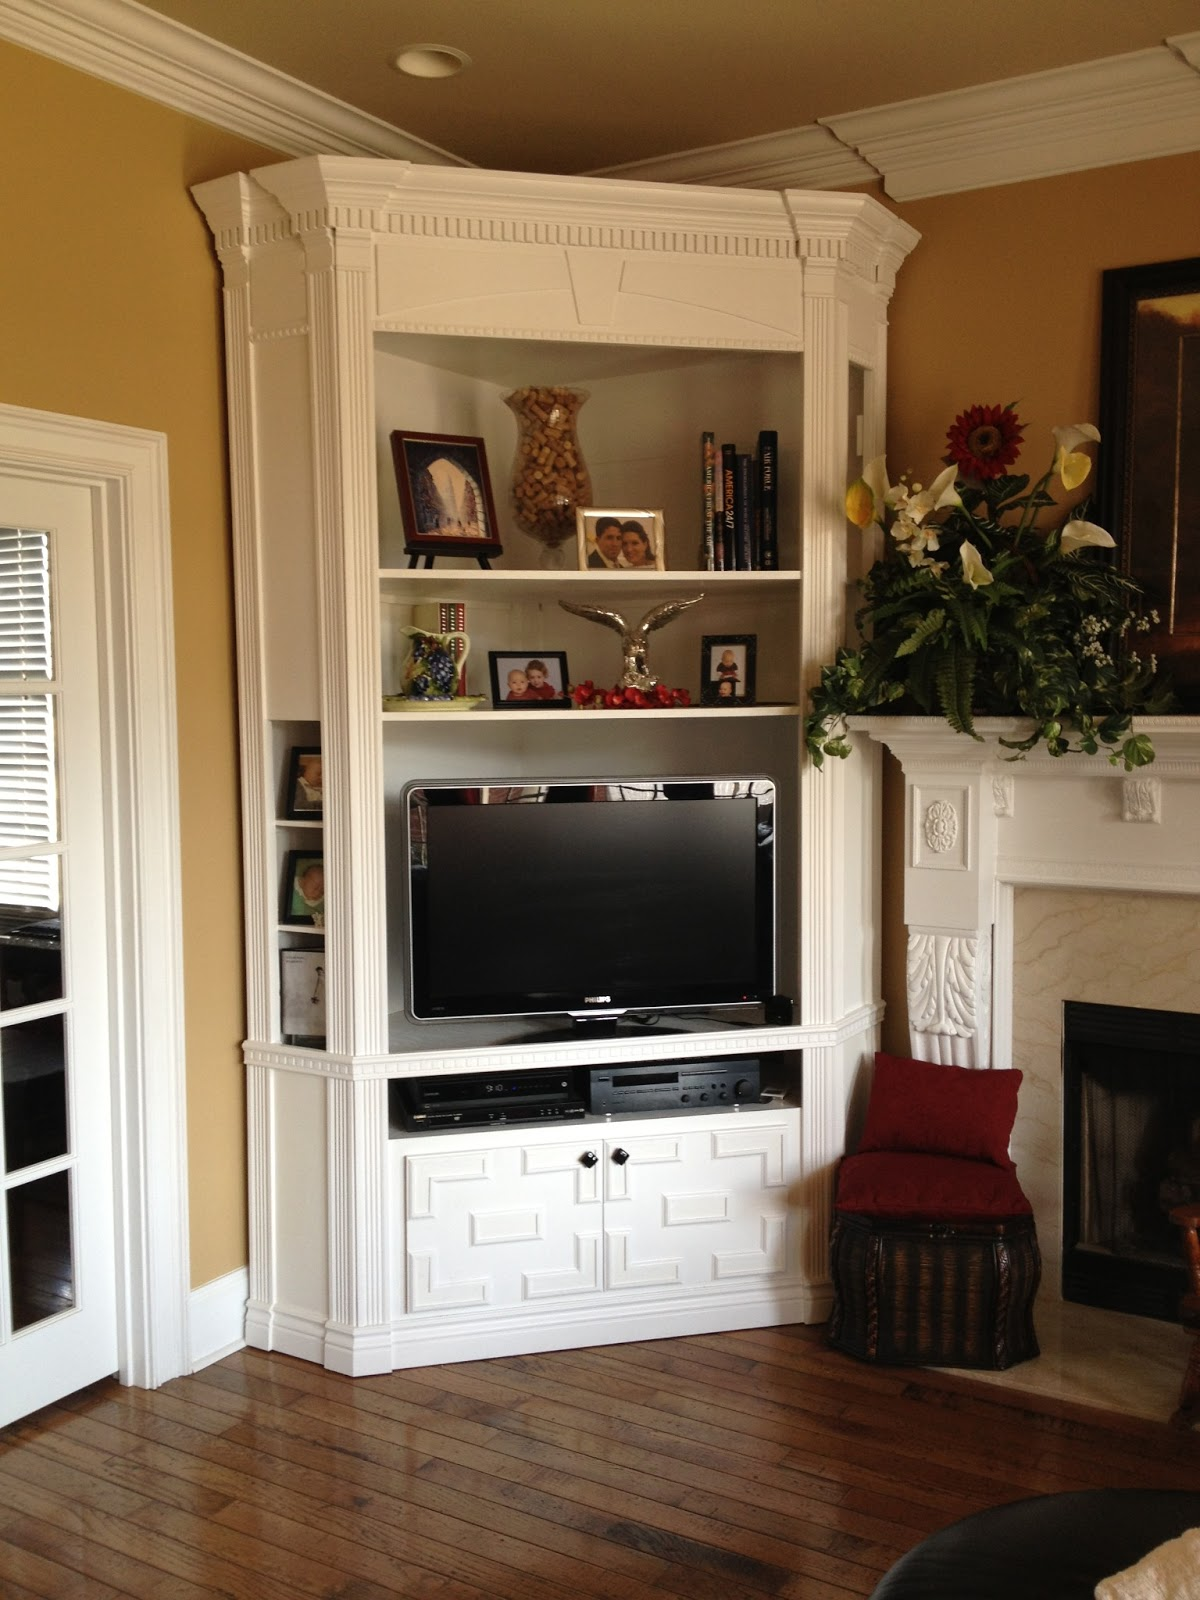 THINK MAKE LIVE LOVE: HOMEMADE TV STAND - PART 3